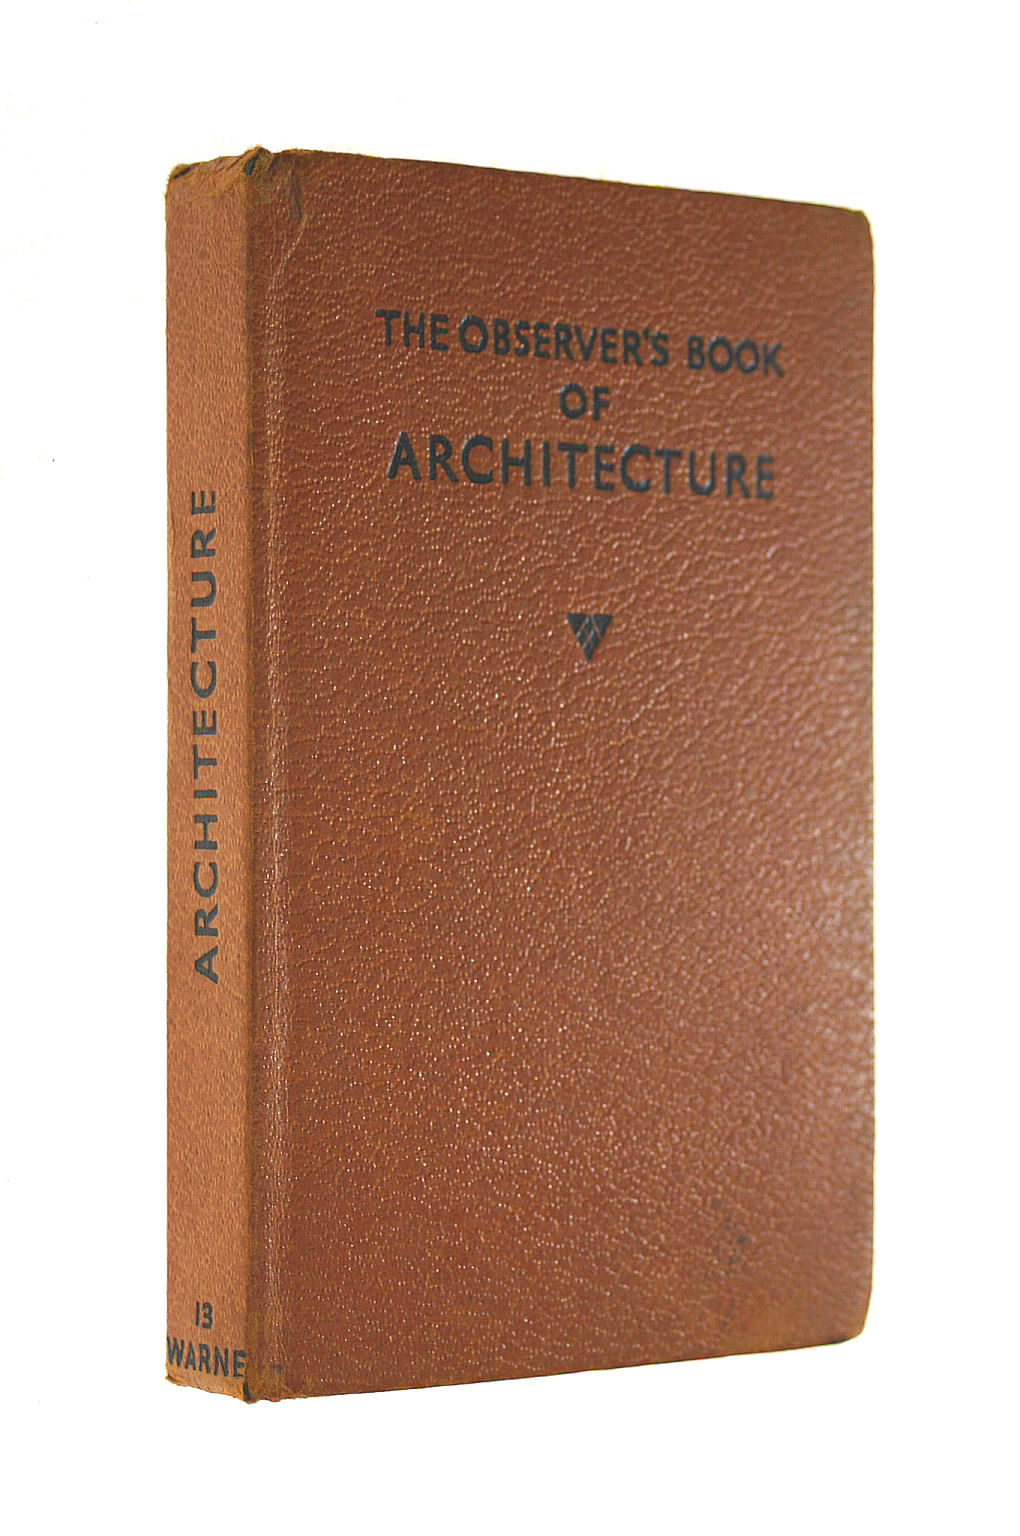 Image for The Observer's Book Of Architecture (Observer's Pocket Series No. 13)